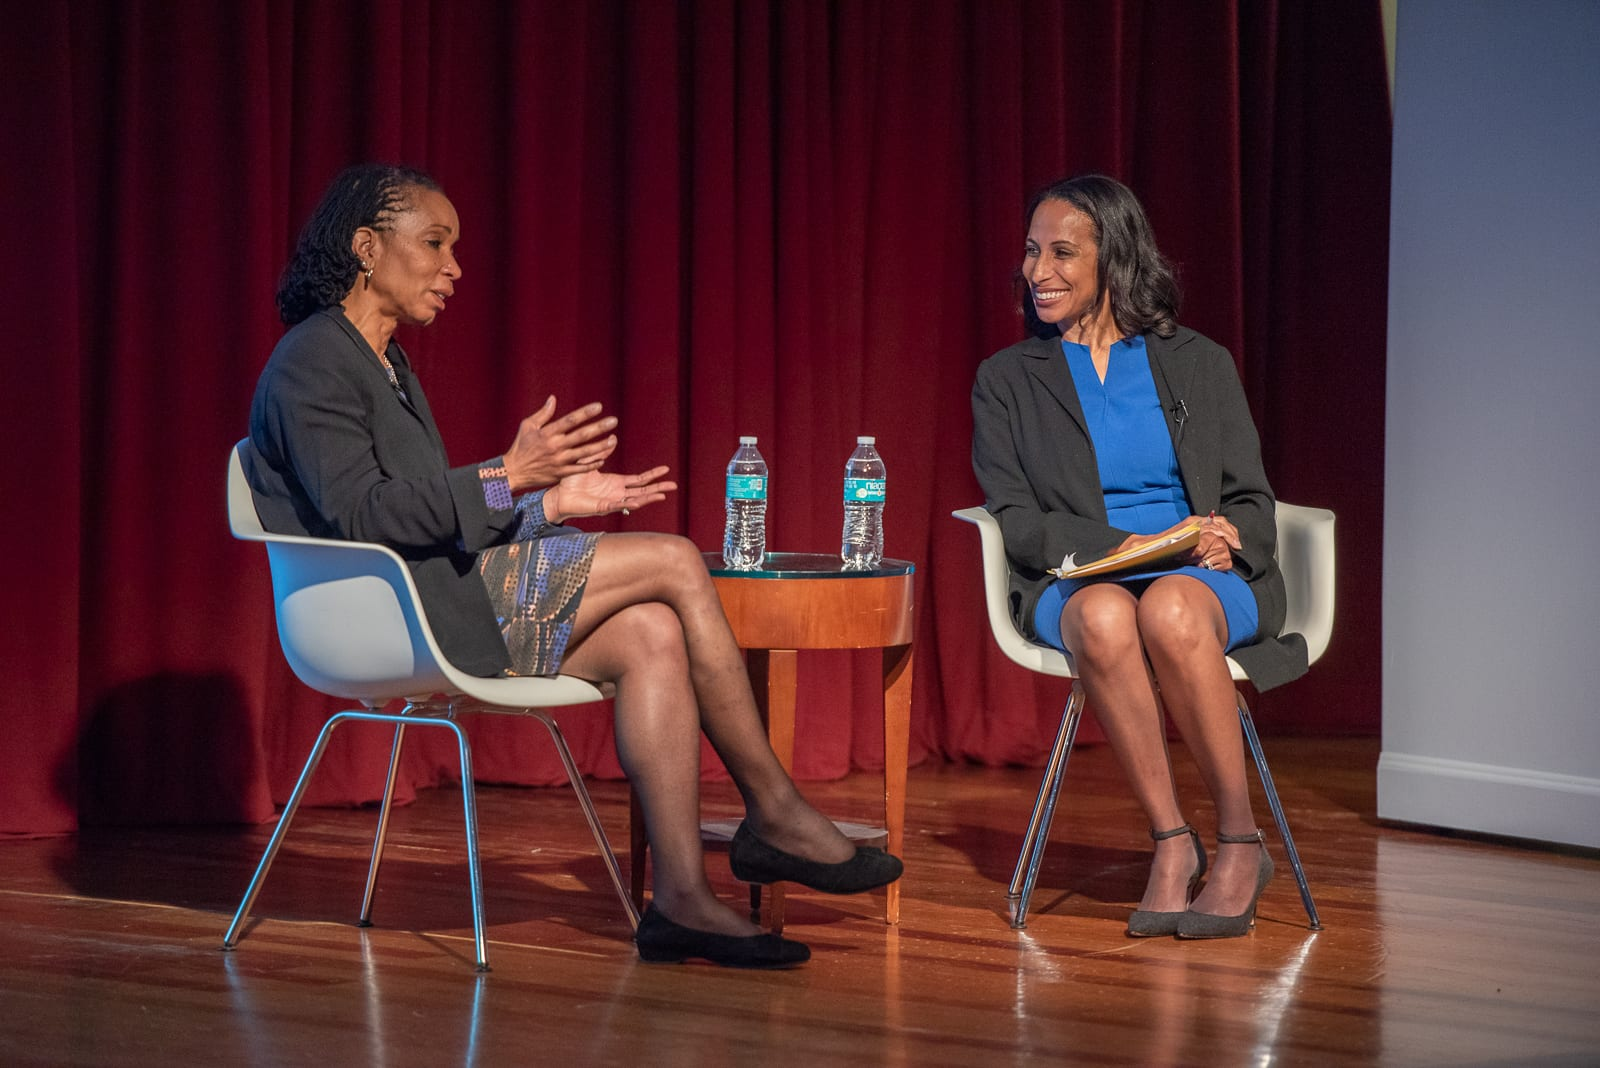 Dr. Helene Gayle, pictured with Dr. Una Osili, kicked off the Diverse Speaker Series